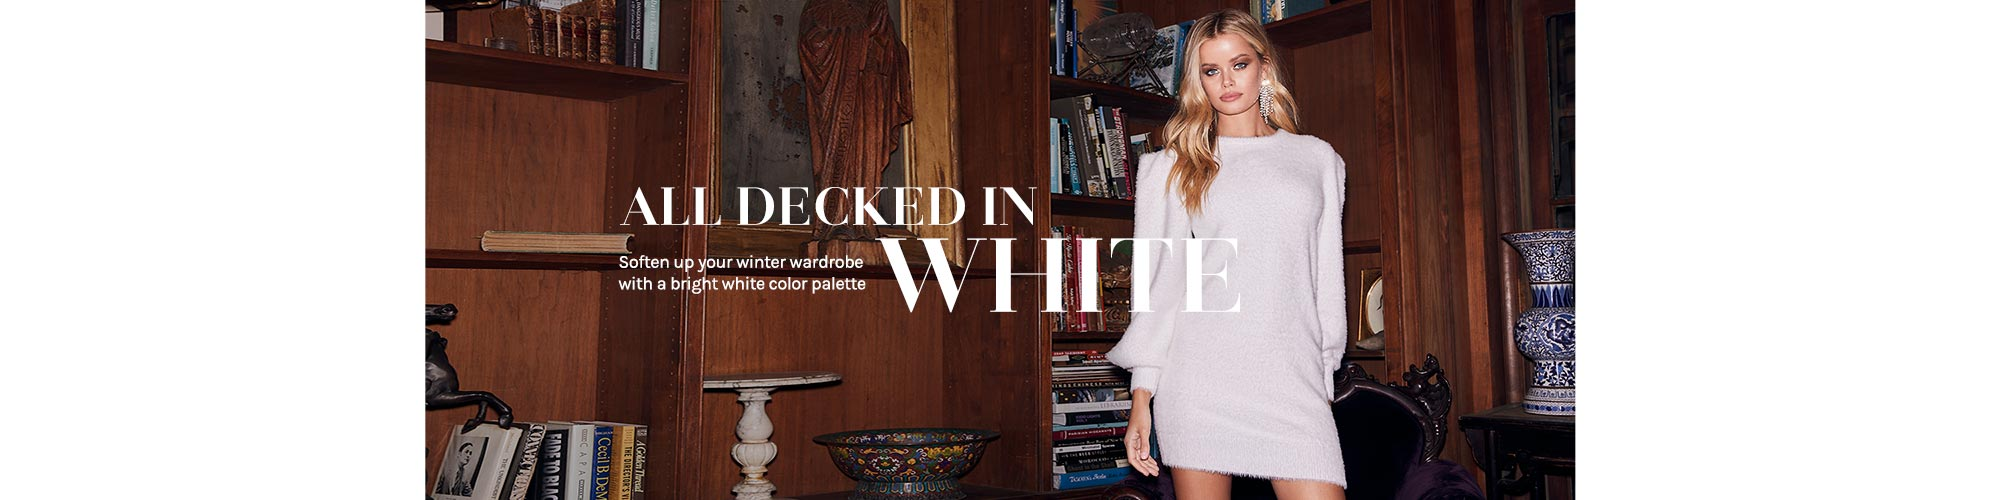 All Decked In White. Soften up your winter wardrobe with a bright white color palette. Shop the edit.